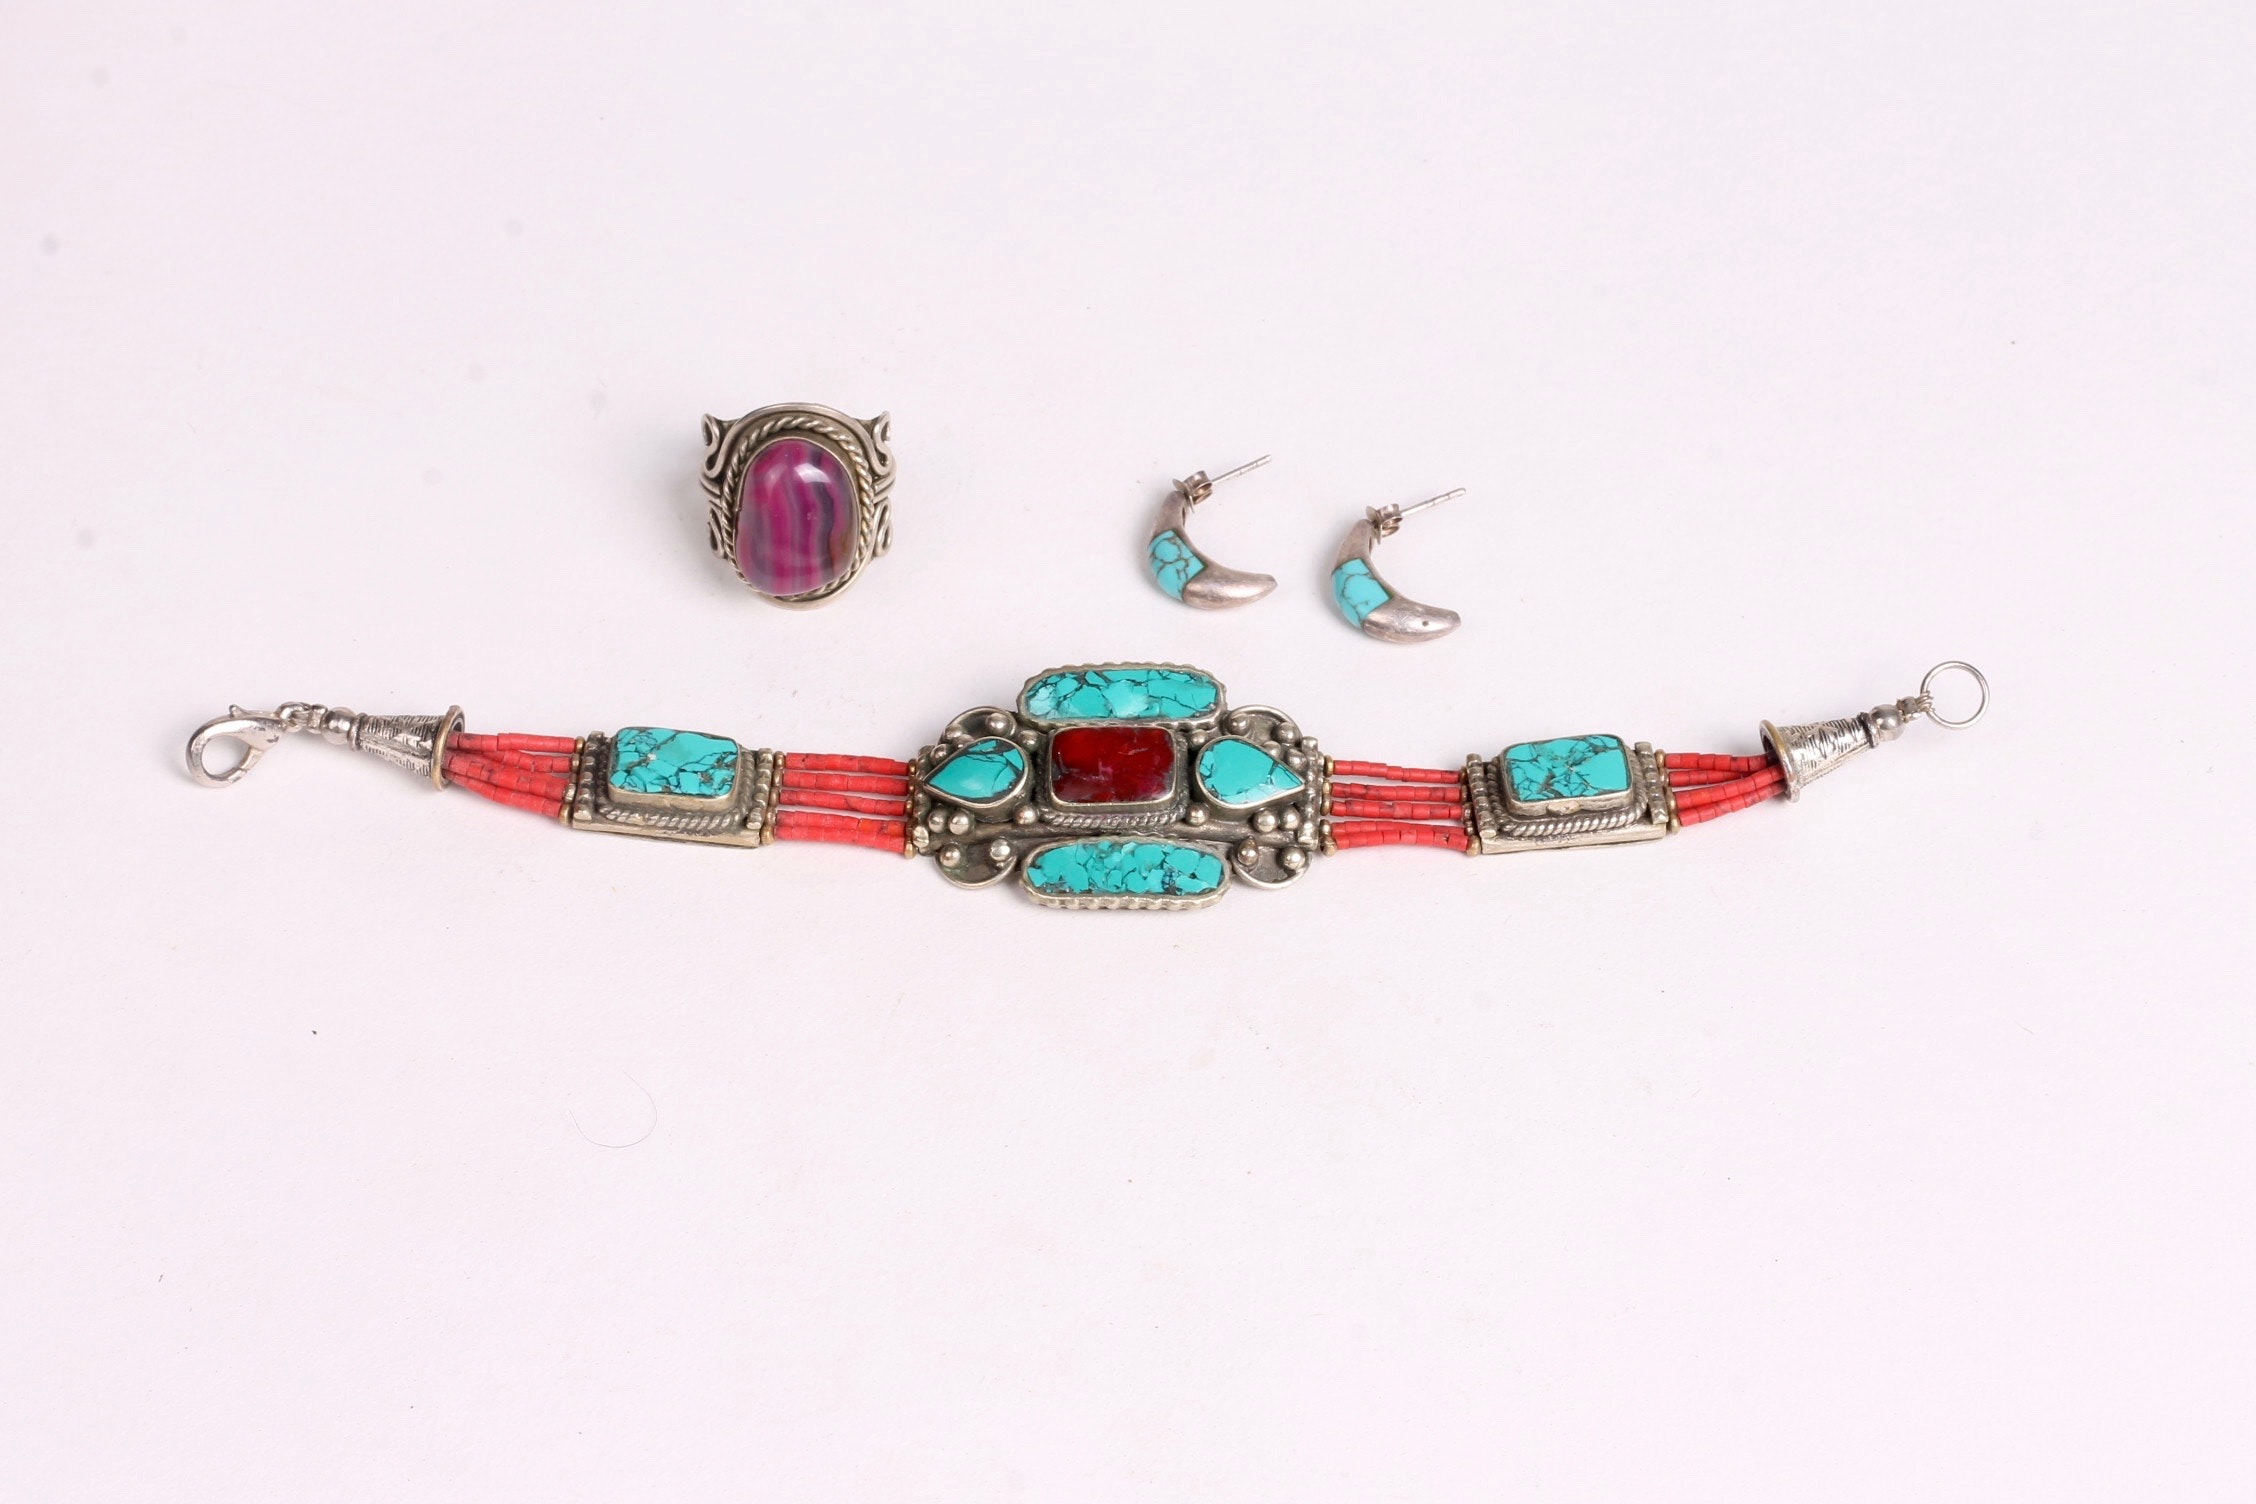 Navajo Style Turquoise, Coral, and Sterling Silver Jewelry